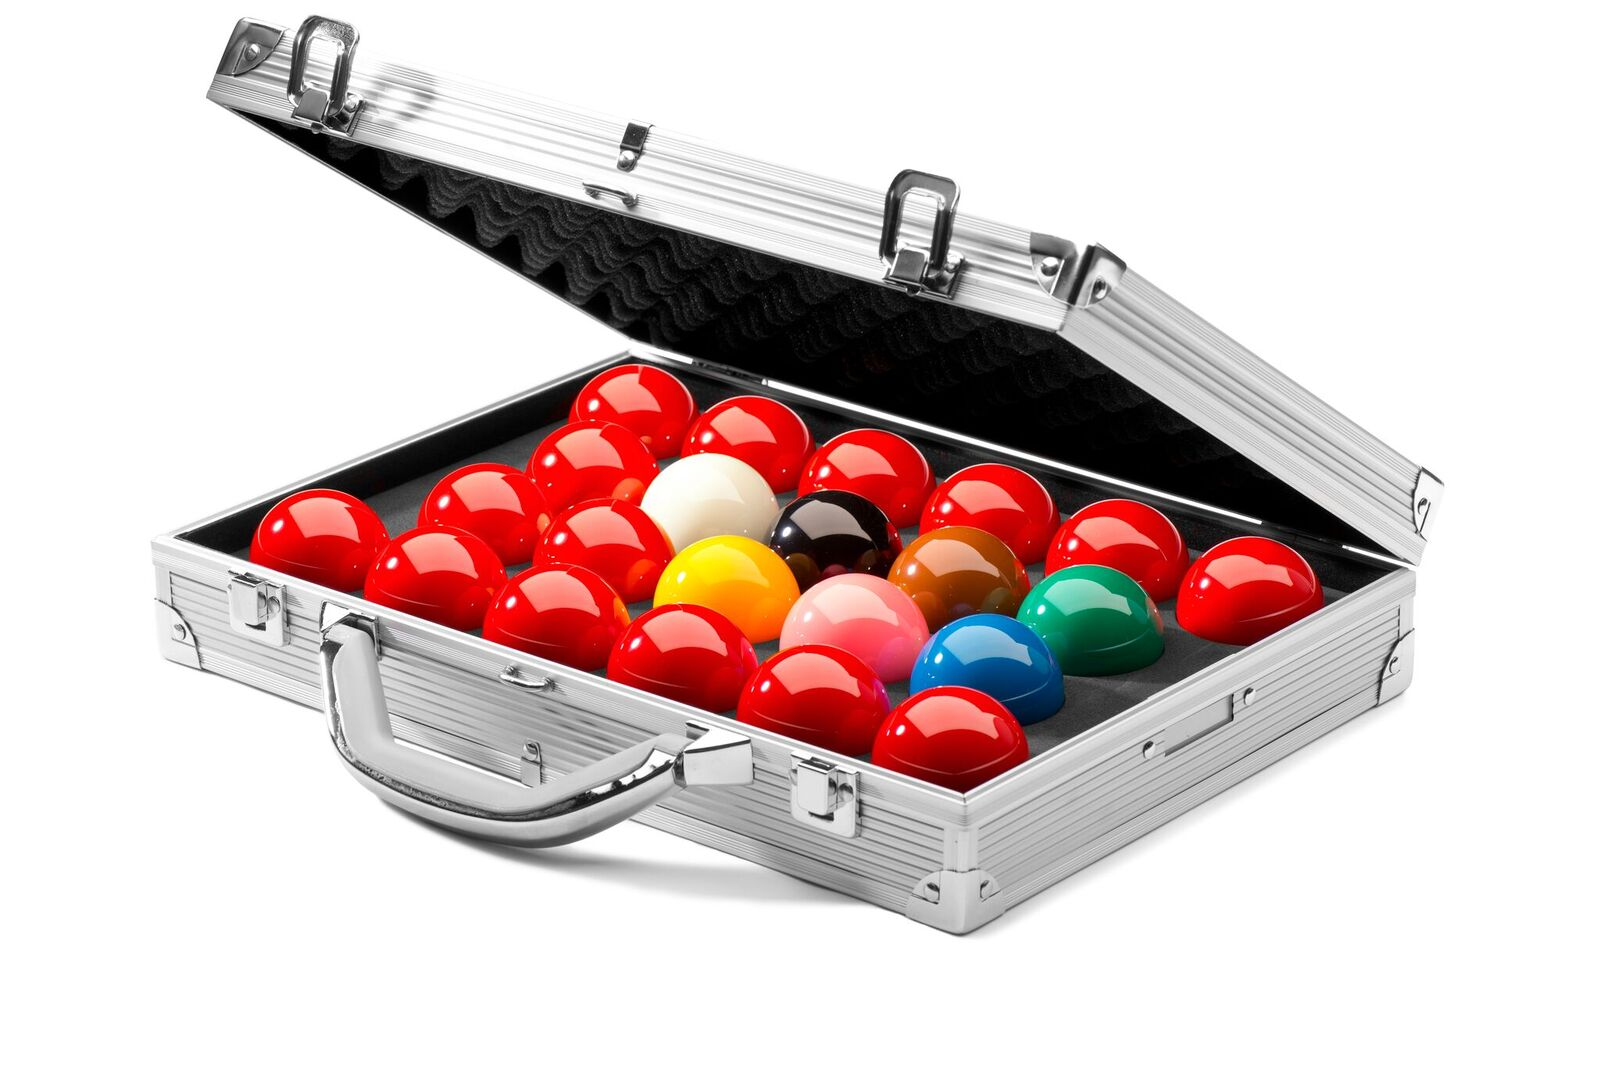 Aramith Quot 1g Quot Snooker Ball Set Drinkwaters